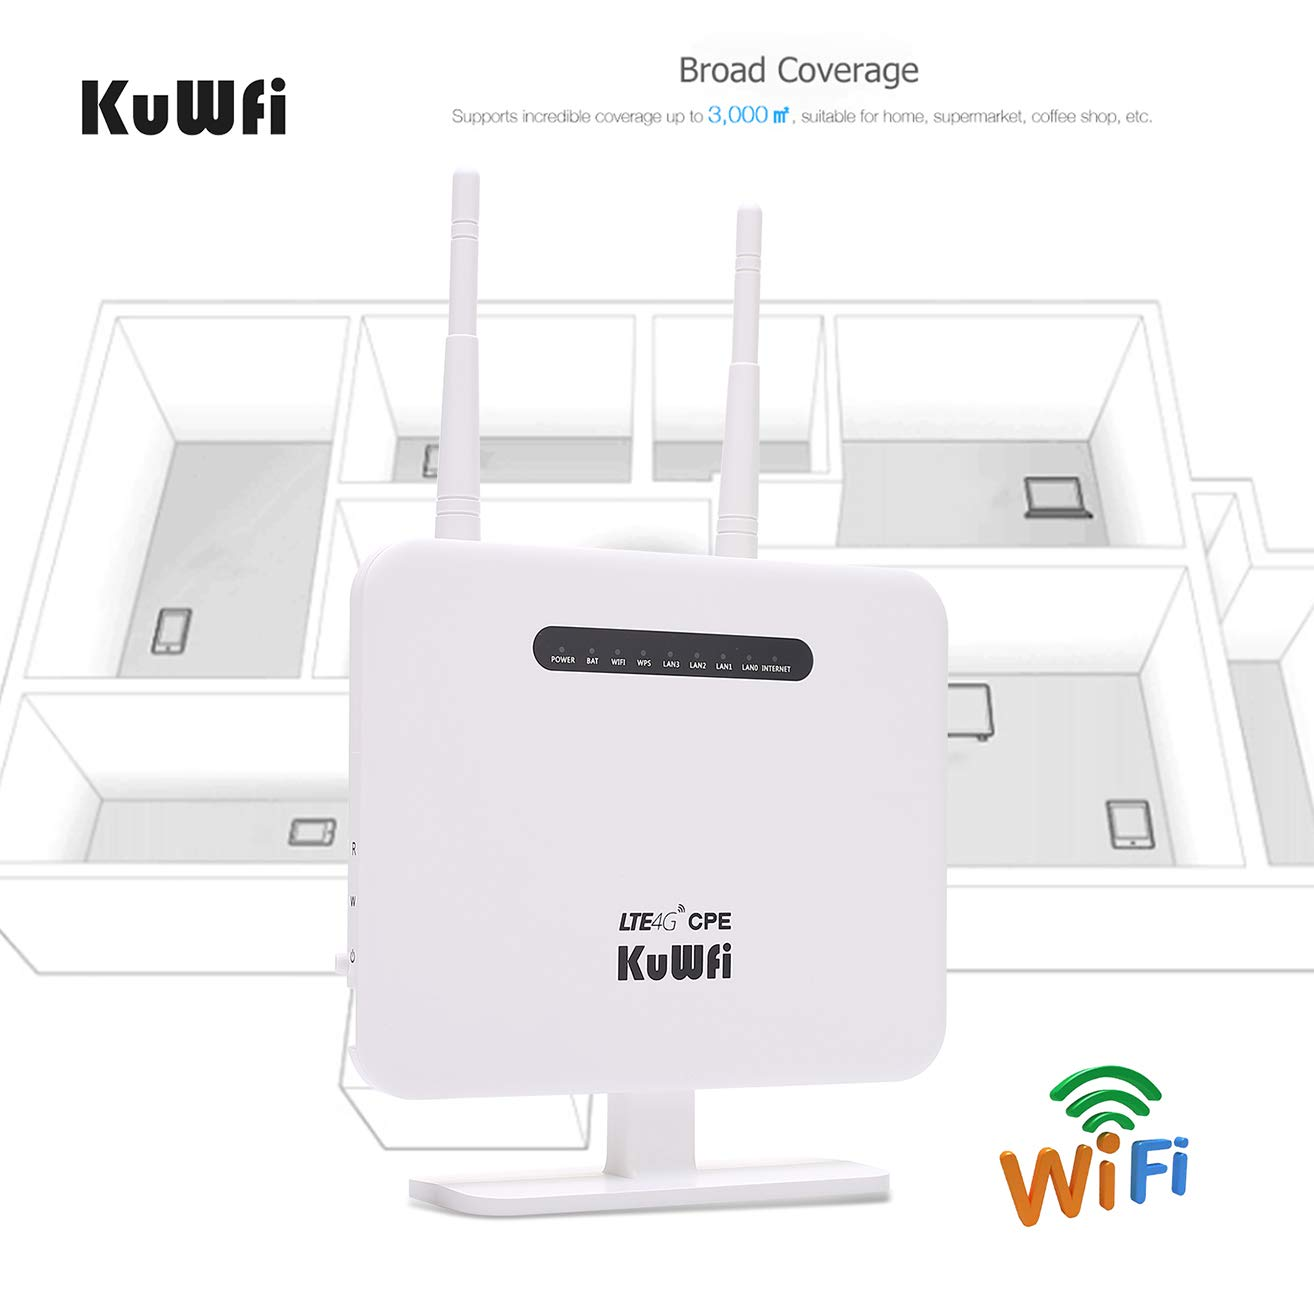 Kuwfi 4g Lte Cpe Router 300mbps Unlocked 4g Lte Cpe Amazon In Electronics